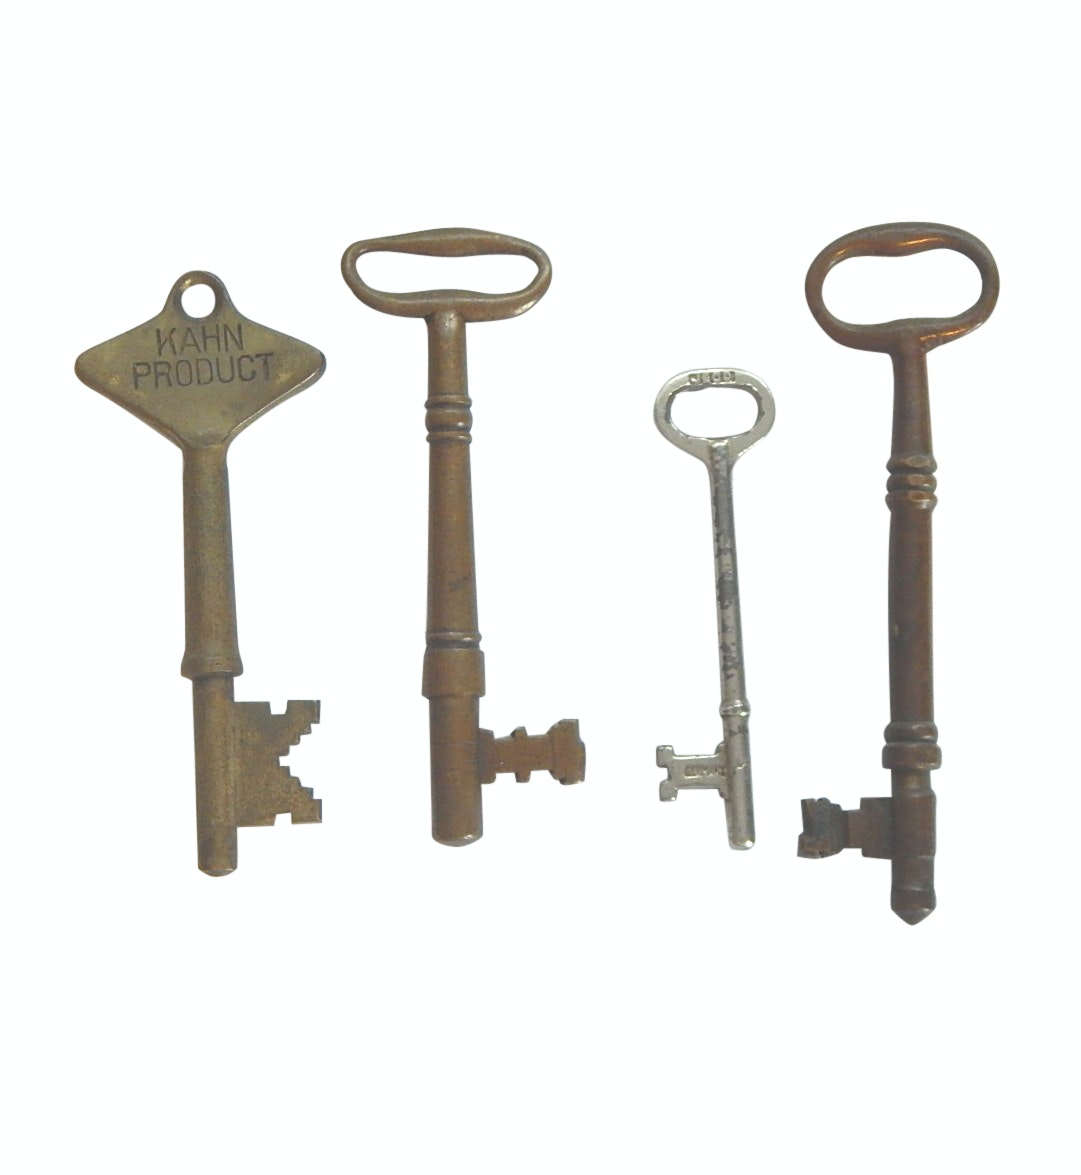 """Antique Brass and Steel Skeleton Keys with """"Kahn Product"""" and """"J.E. Co. Germany"""""""